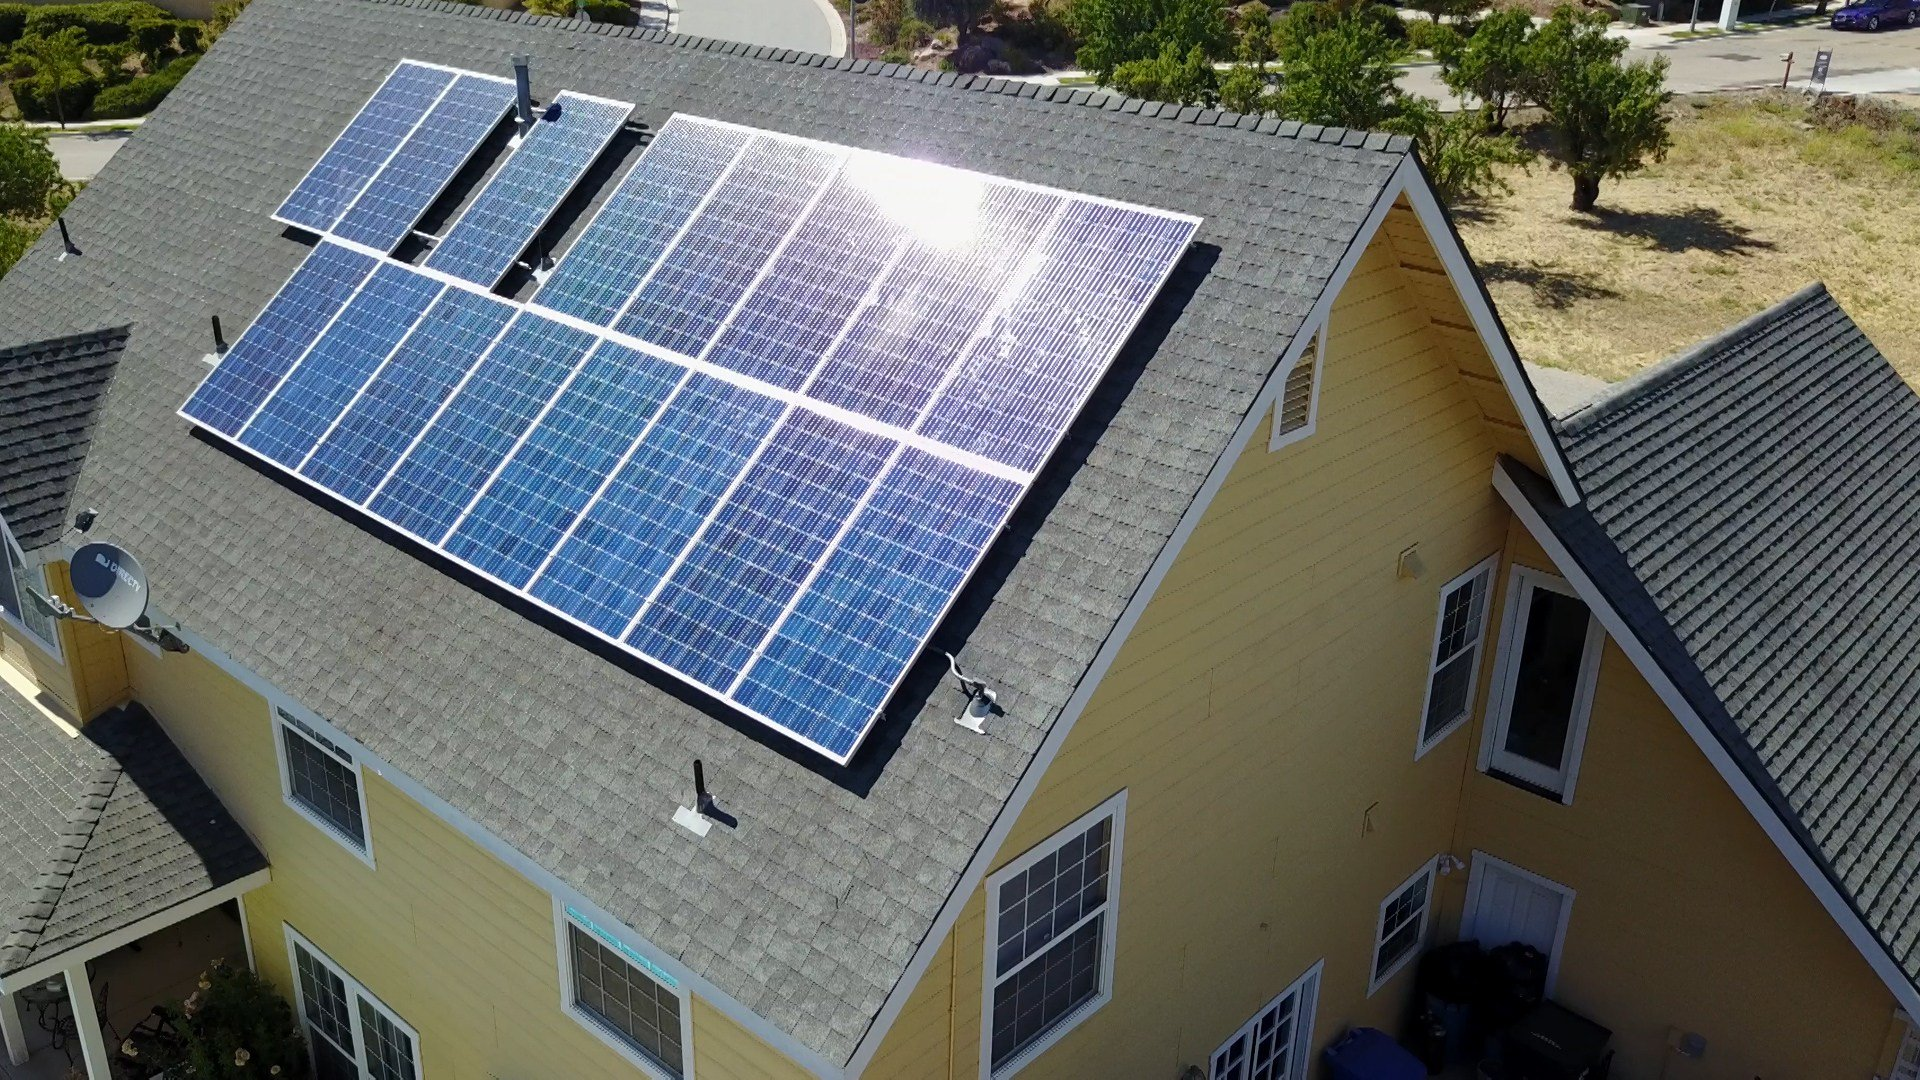 California becomes 1st state to require solar on all new homes